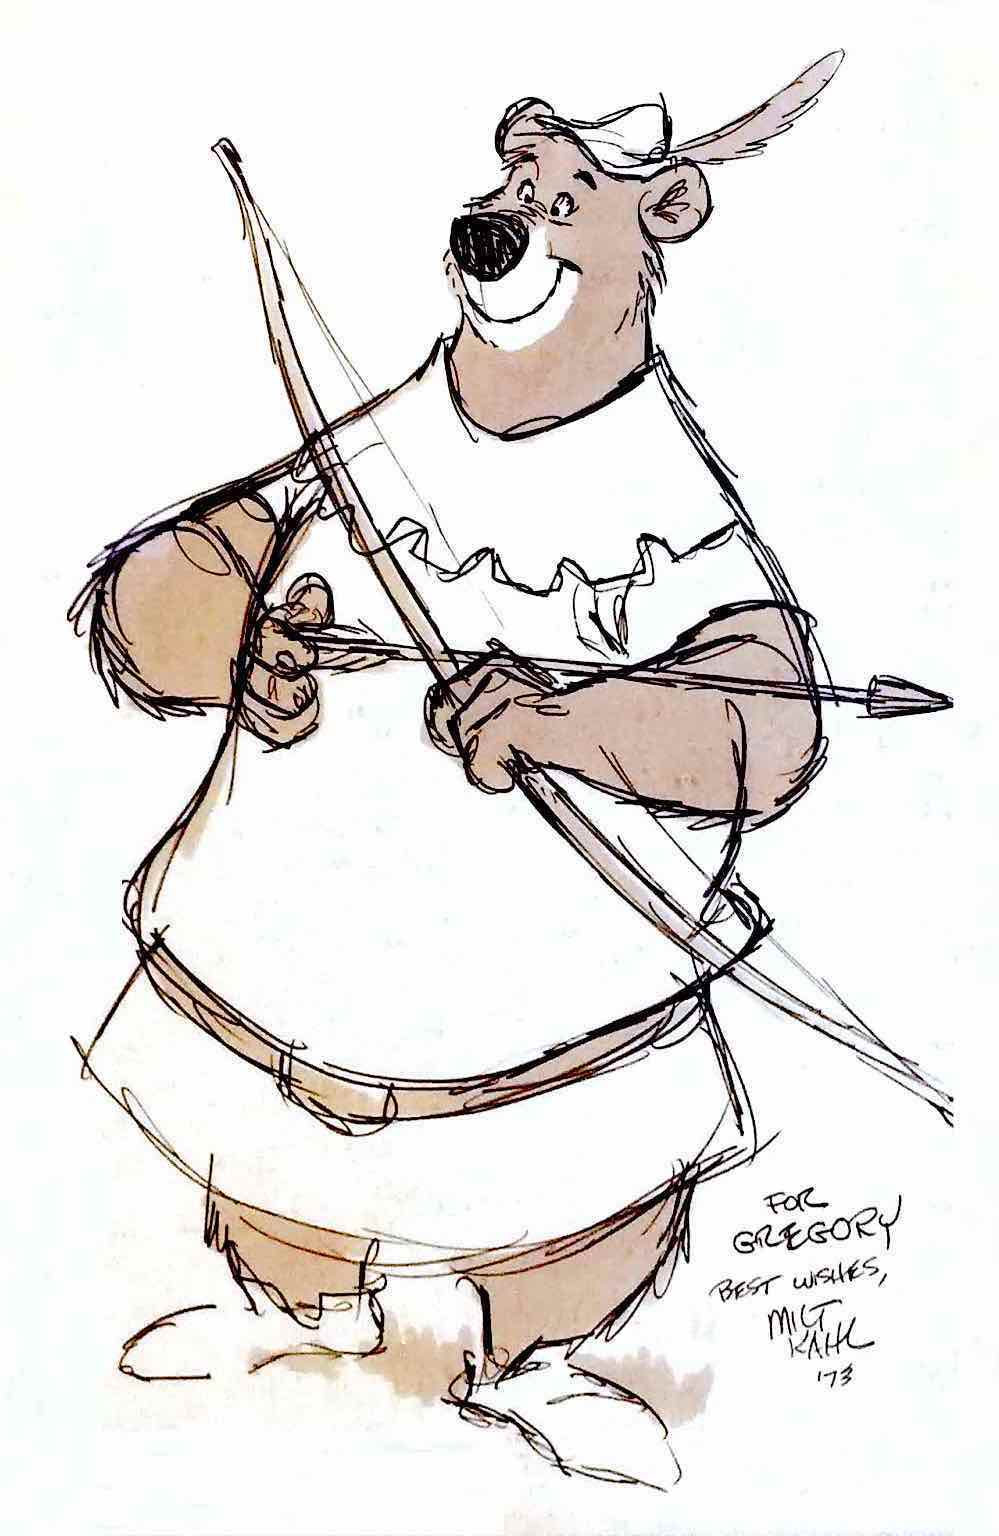 a Milt Kahl drawing for Disney for the 1973 animated film Robin Hood